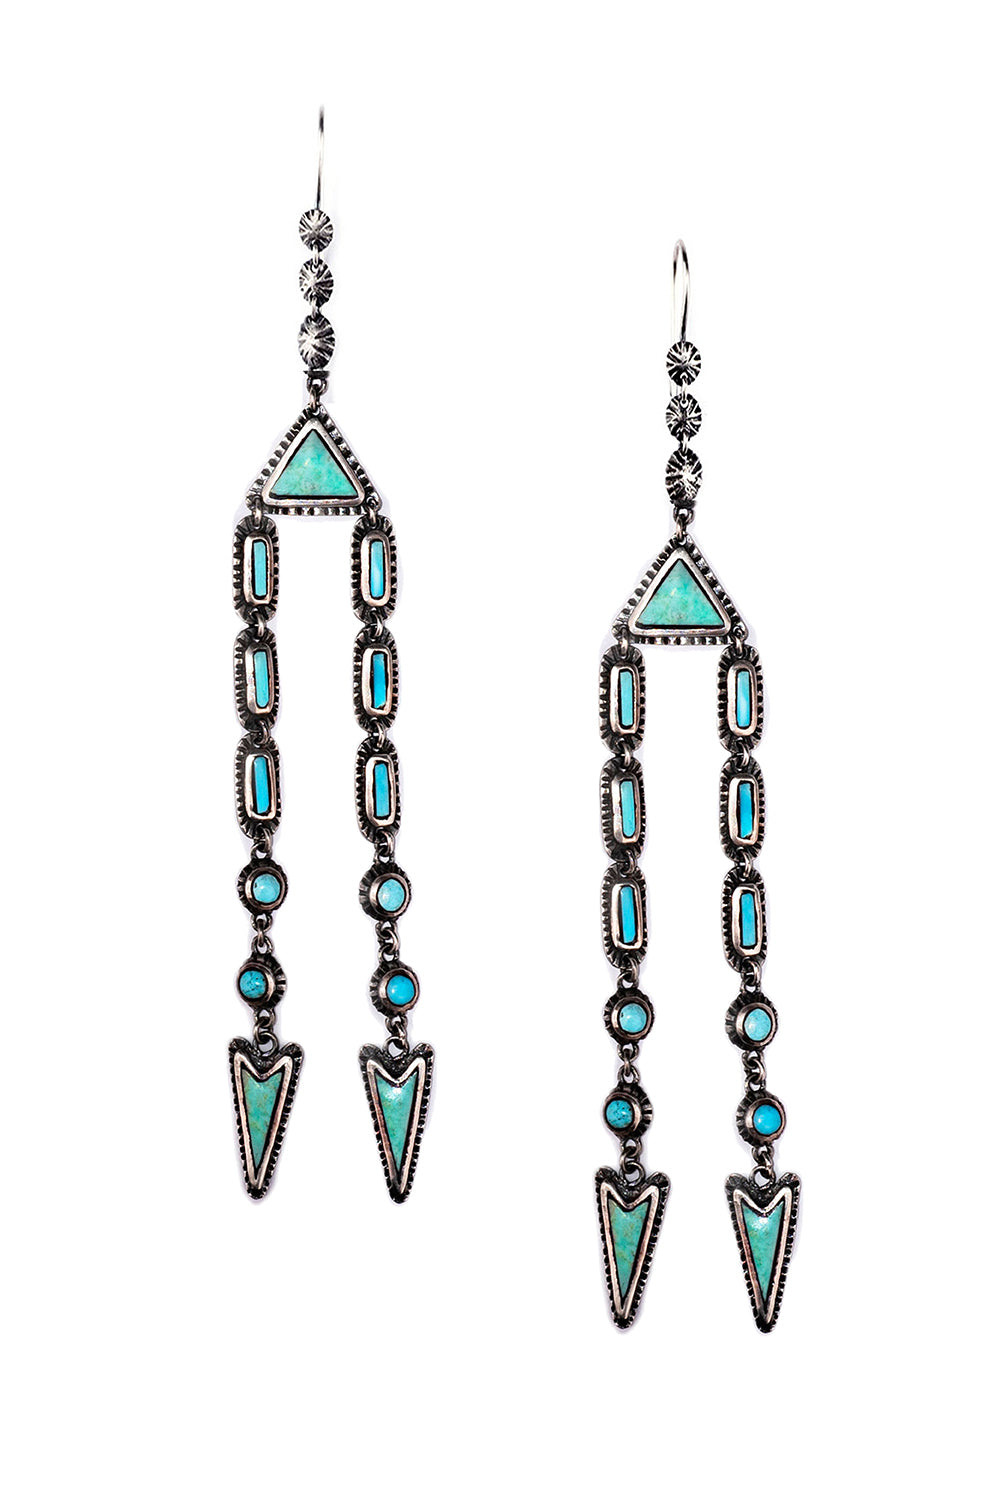 Earring, Chandelier, Turquoise, Marfa Lights, 352